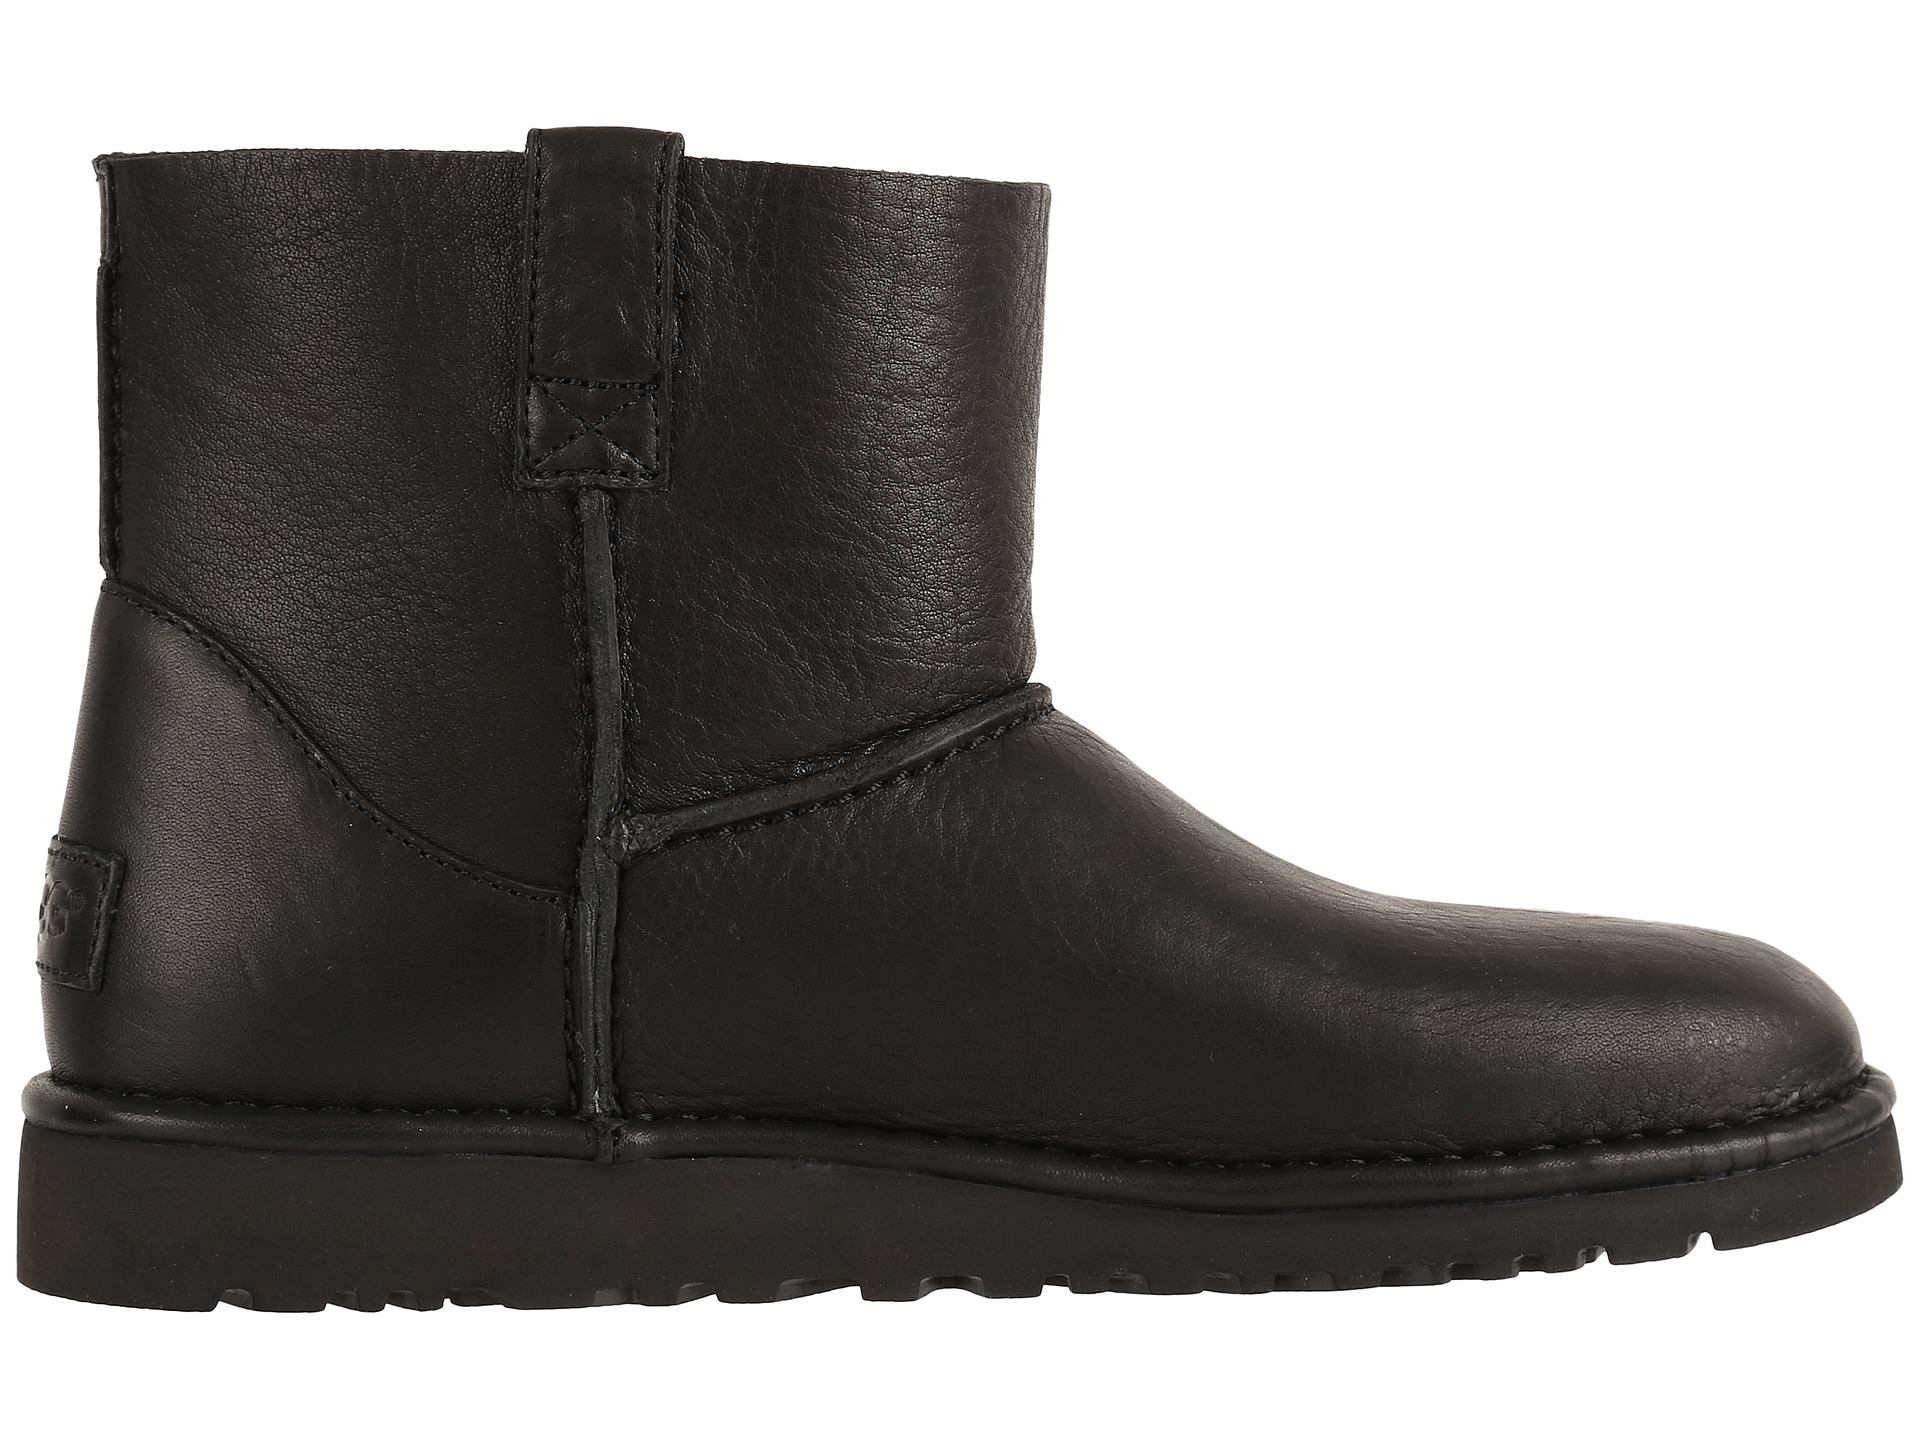 Image Result For Ugg Classic Mini Leather Boots